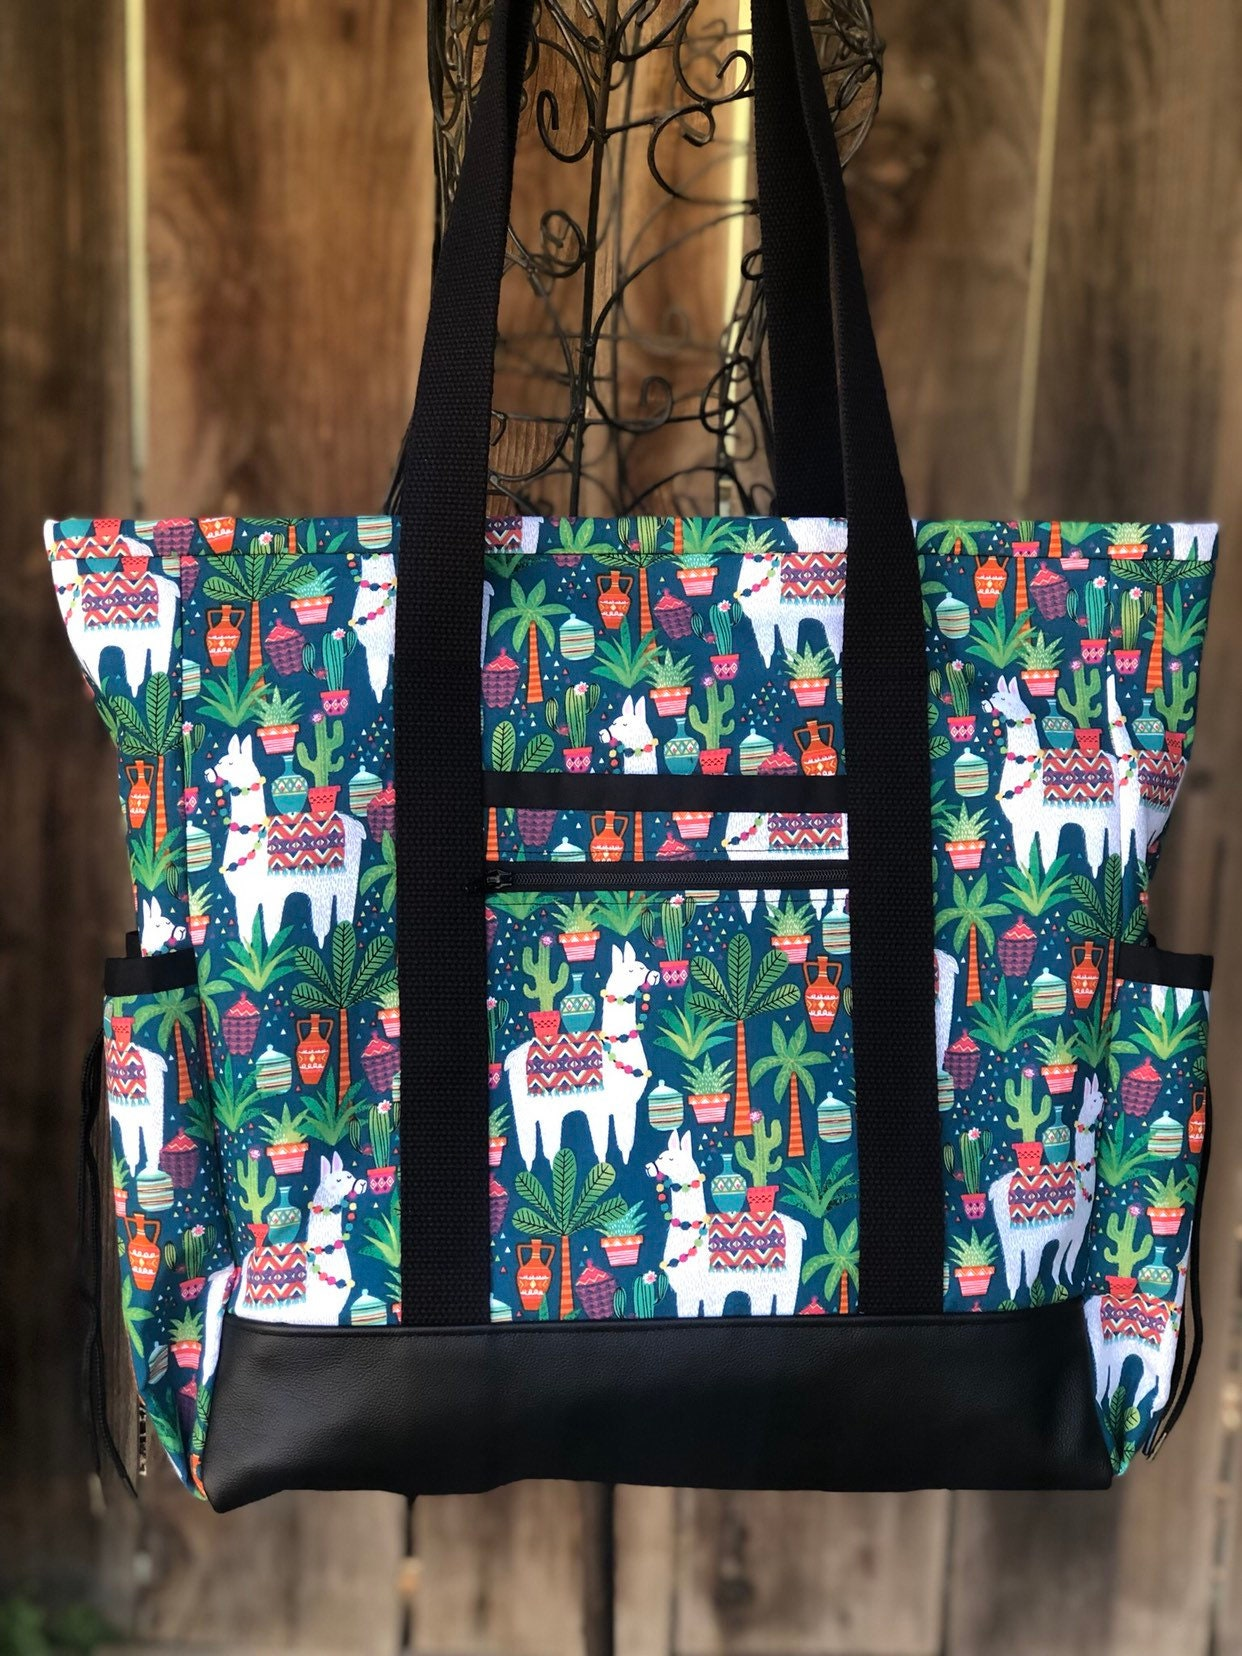 f24b51650015 Large Teacher Tote Bag, Llama Cactus Zippered Nurse Tote Bag with ...